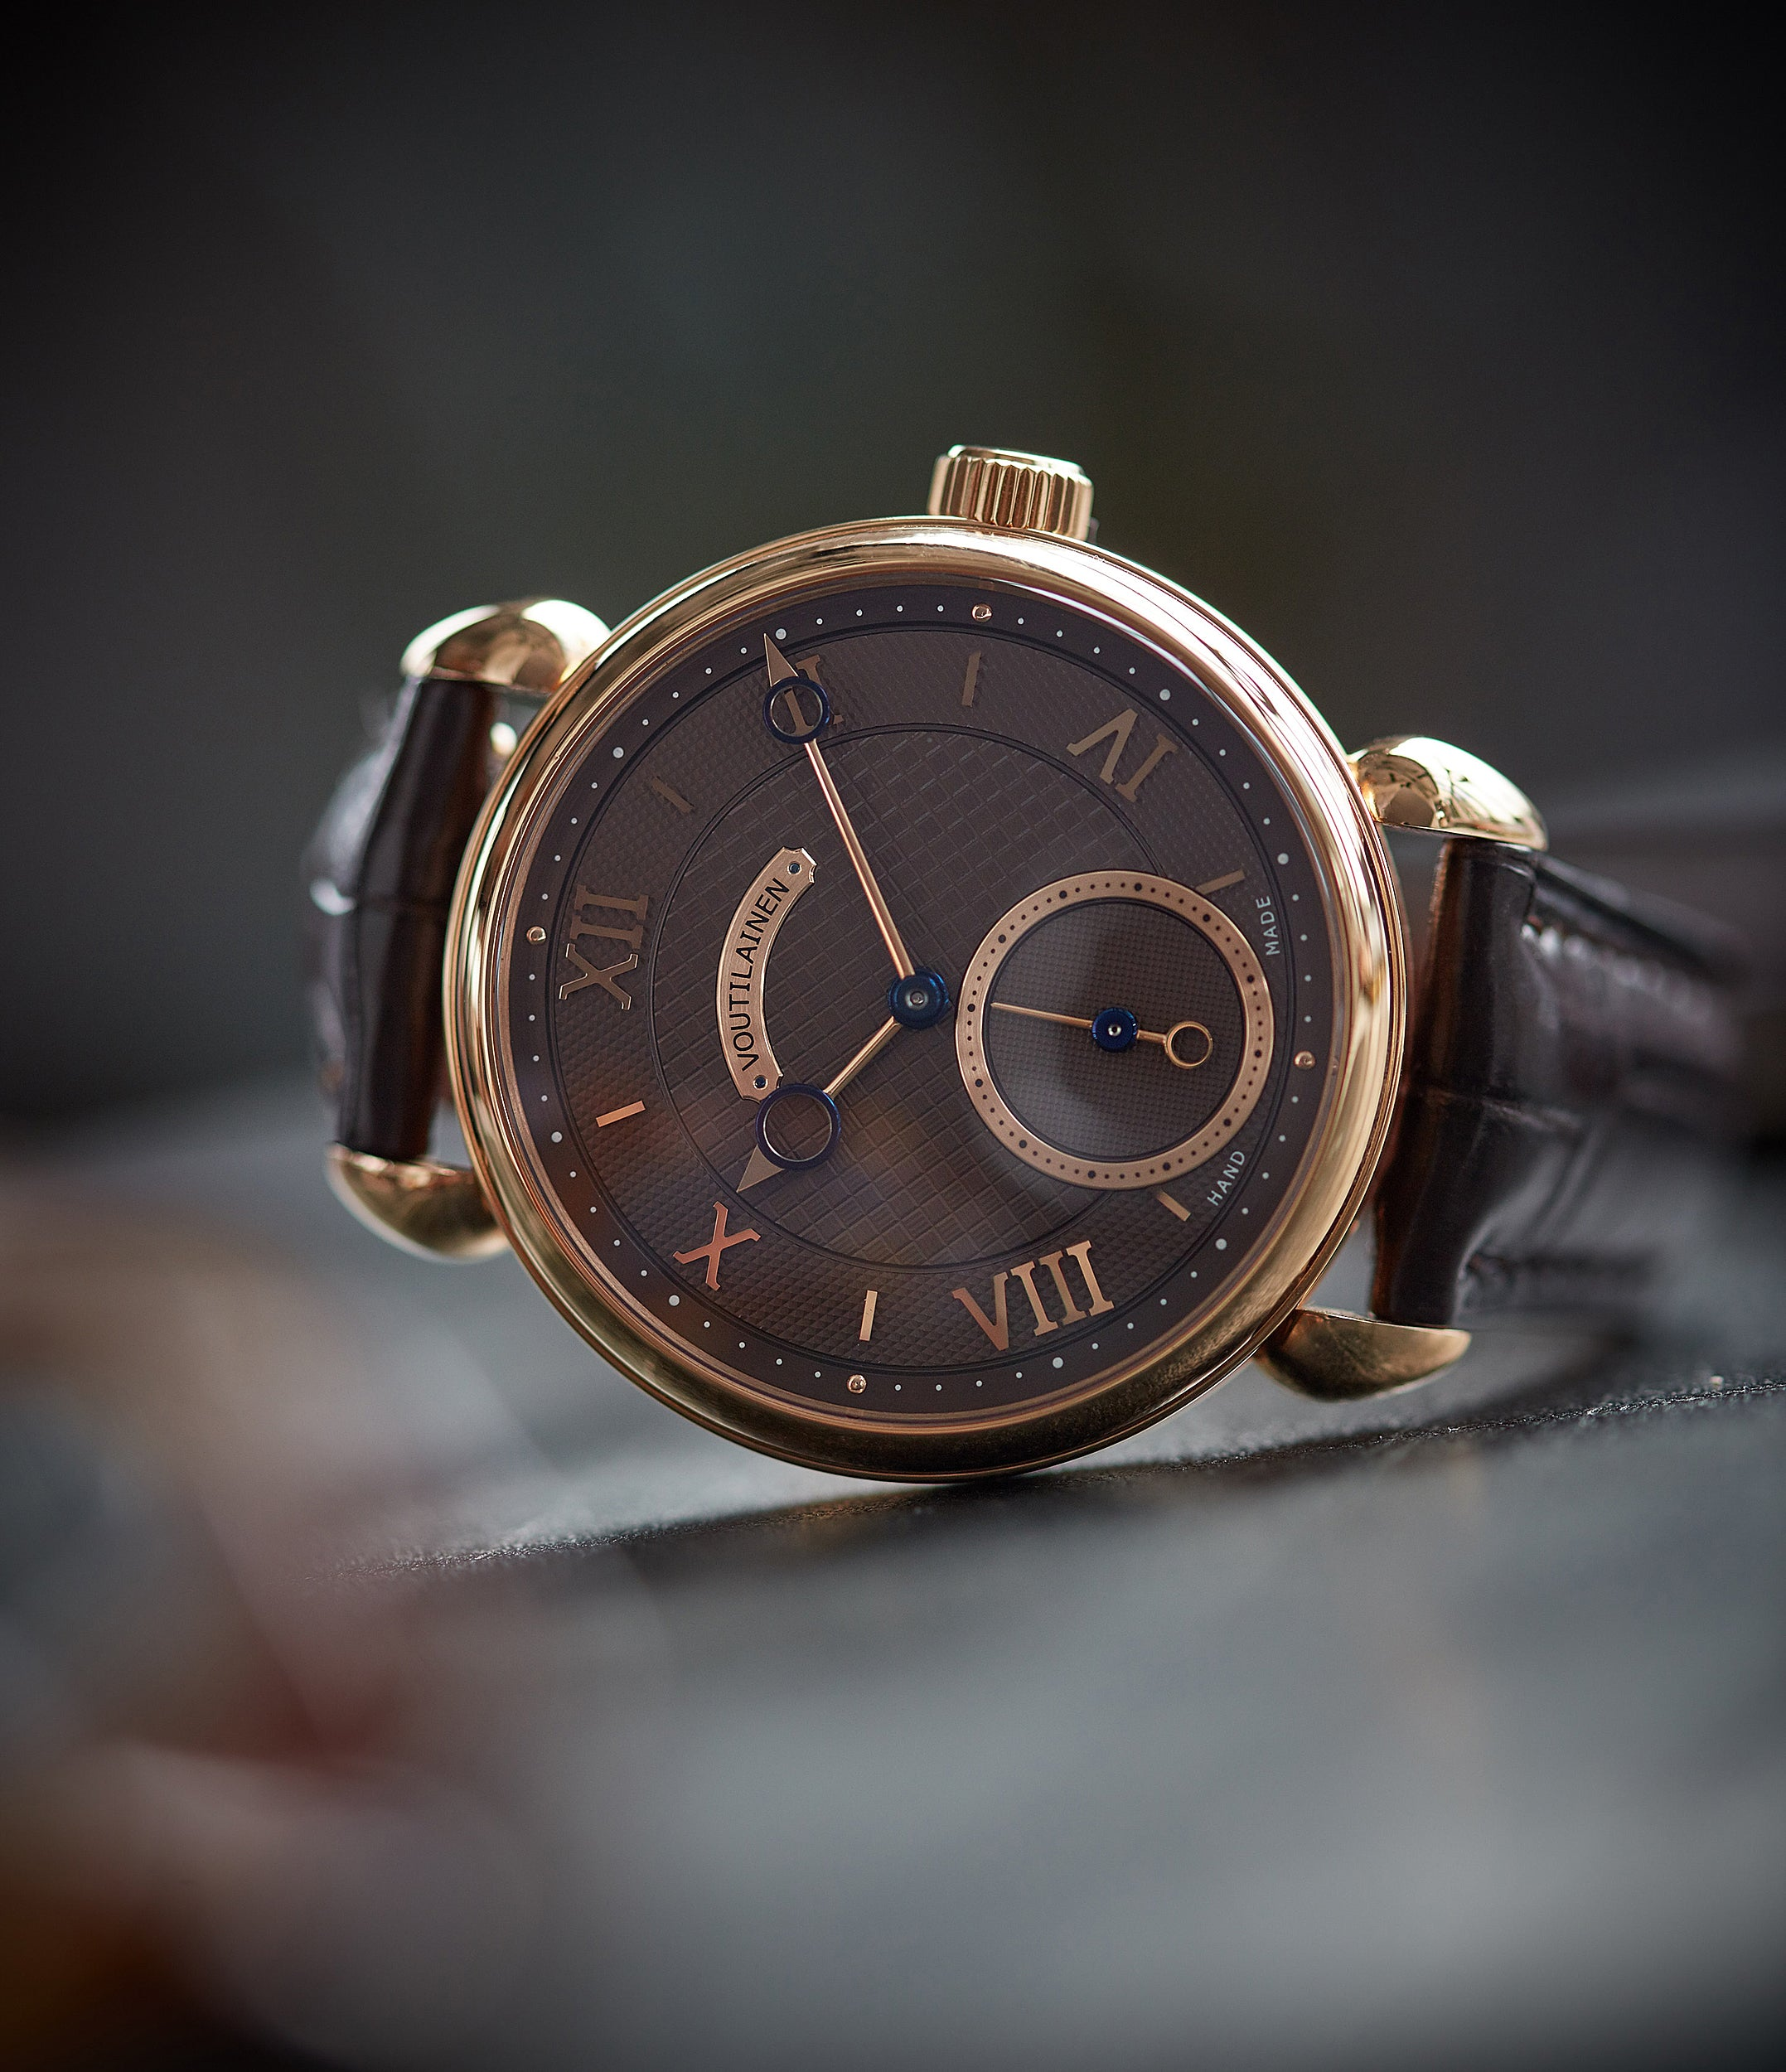 collect Voutilainen Vingt-8 Cal. 28 rose gold dress watch with brown guilloche dial for sale at A Collected Man London approved re-seller of preowned Voutilainen watches